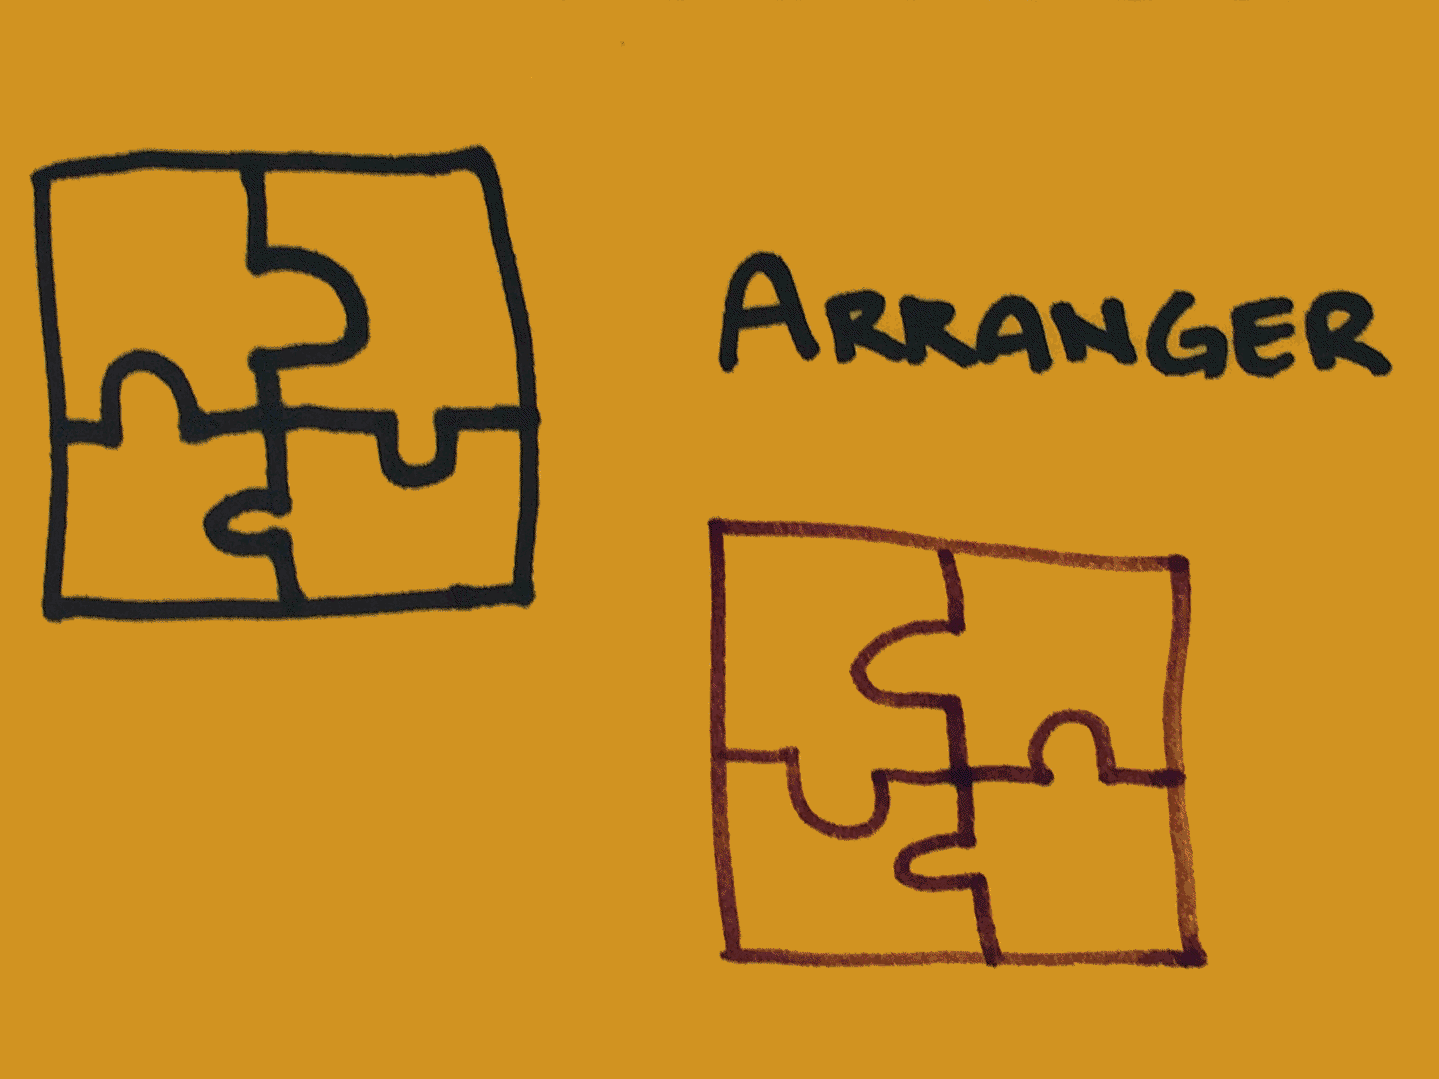 Arranger Strengthsfinder Puzzle Pieces